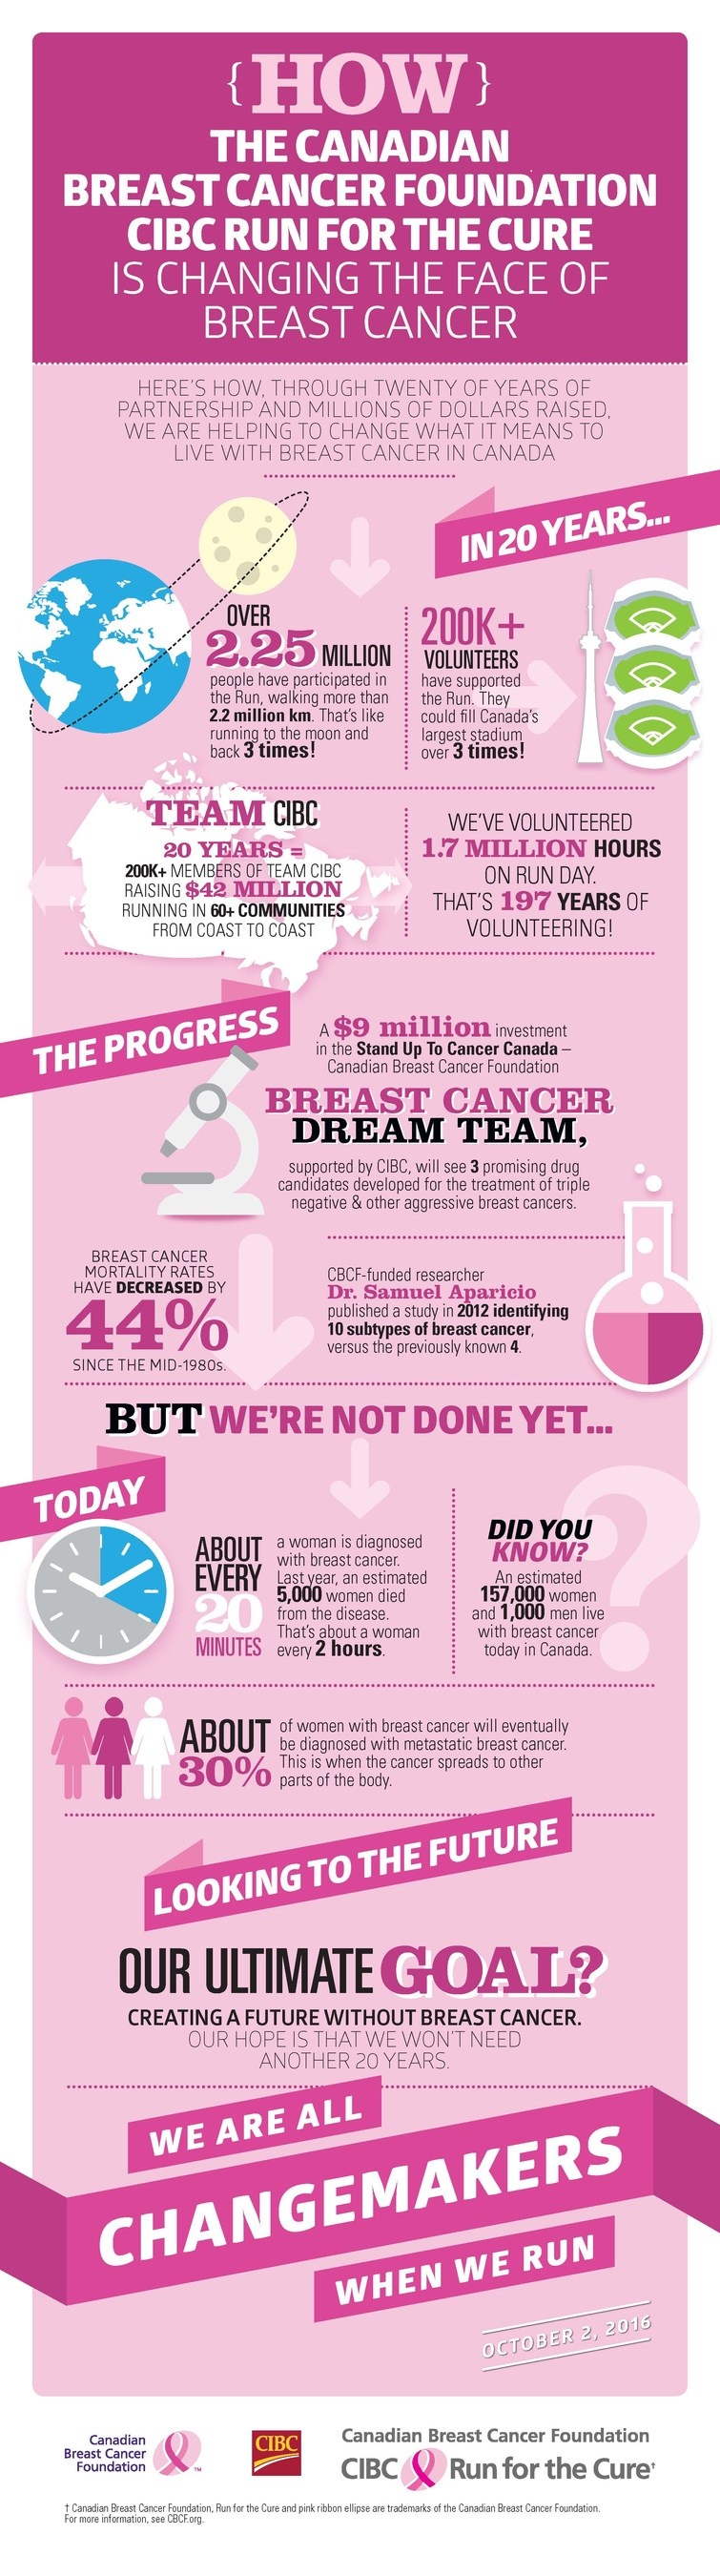 See how twenty of years of partnership and millions of Run dollars raised have helped change what it means to live with breast cancer in Canada (CNW Group/CIBC)